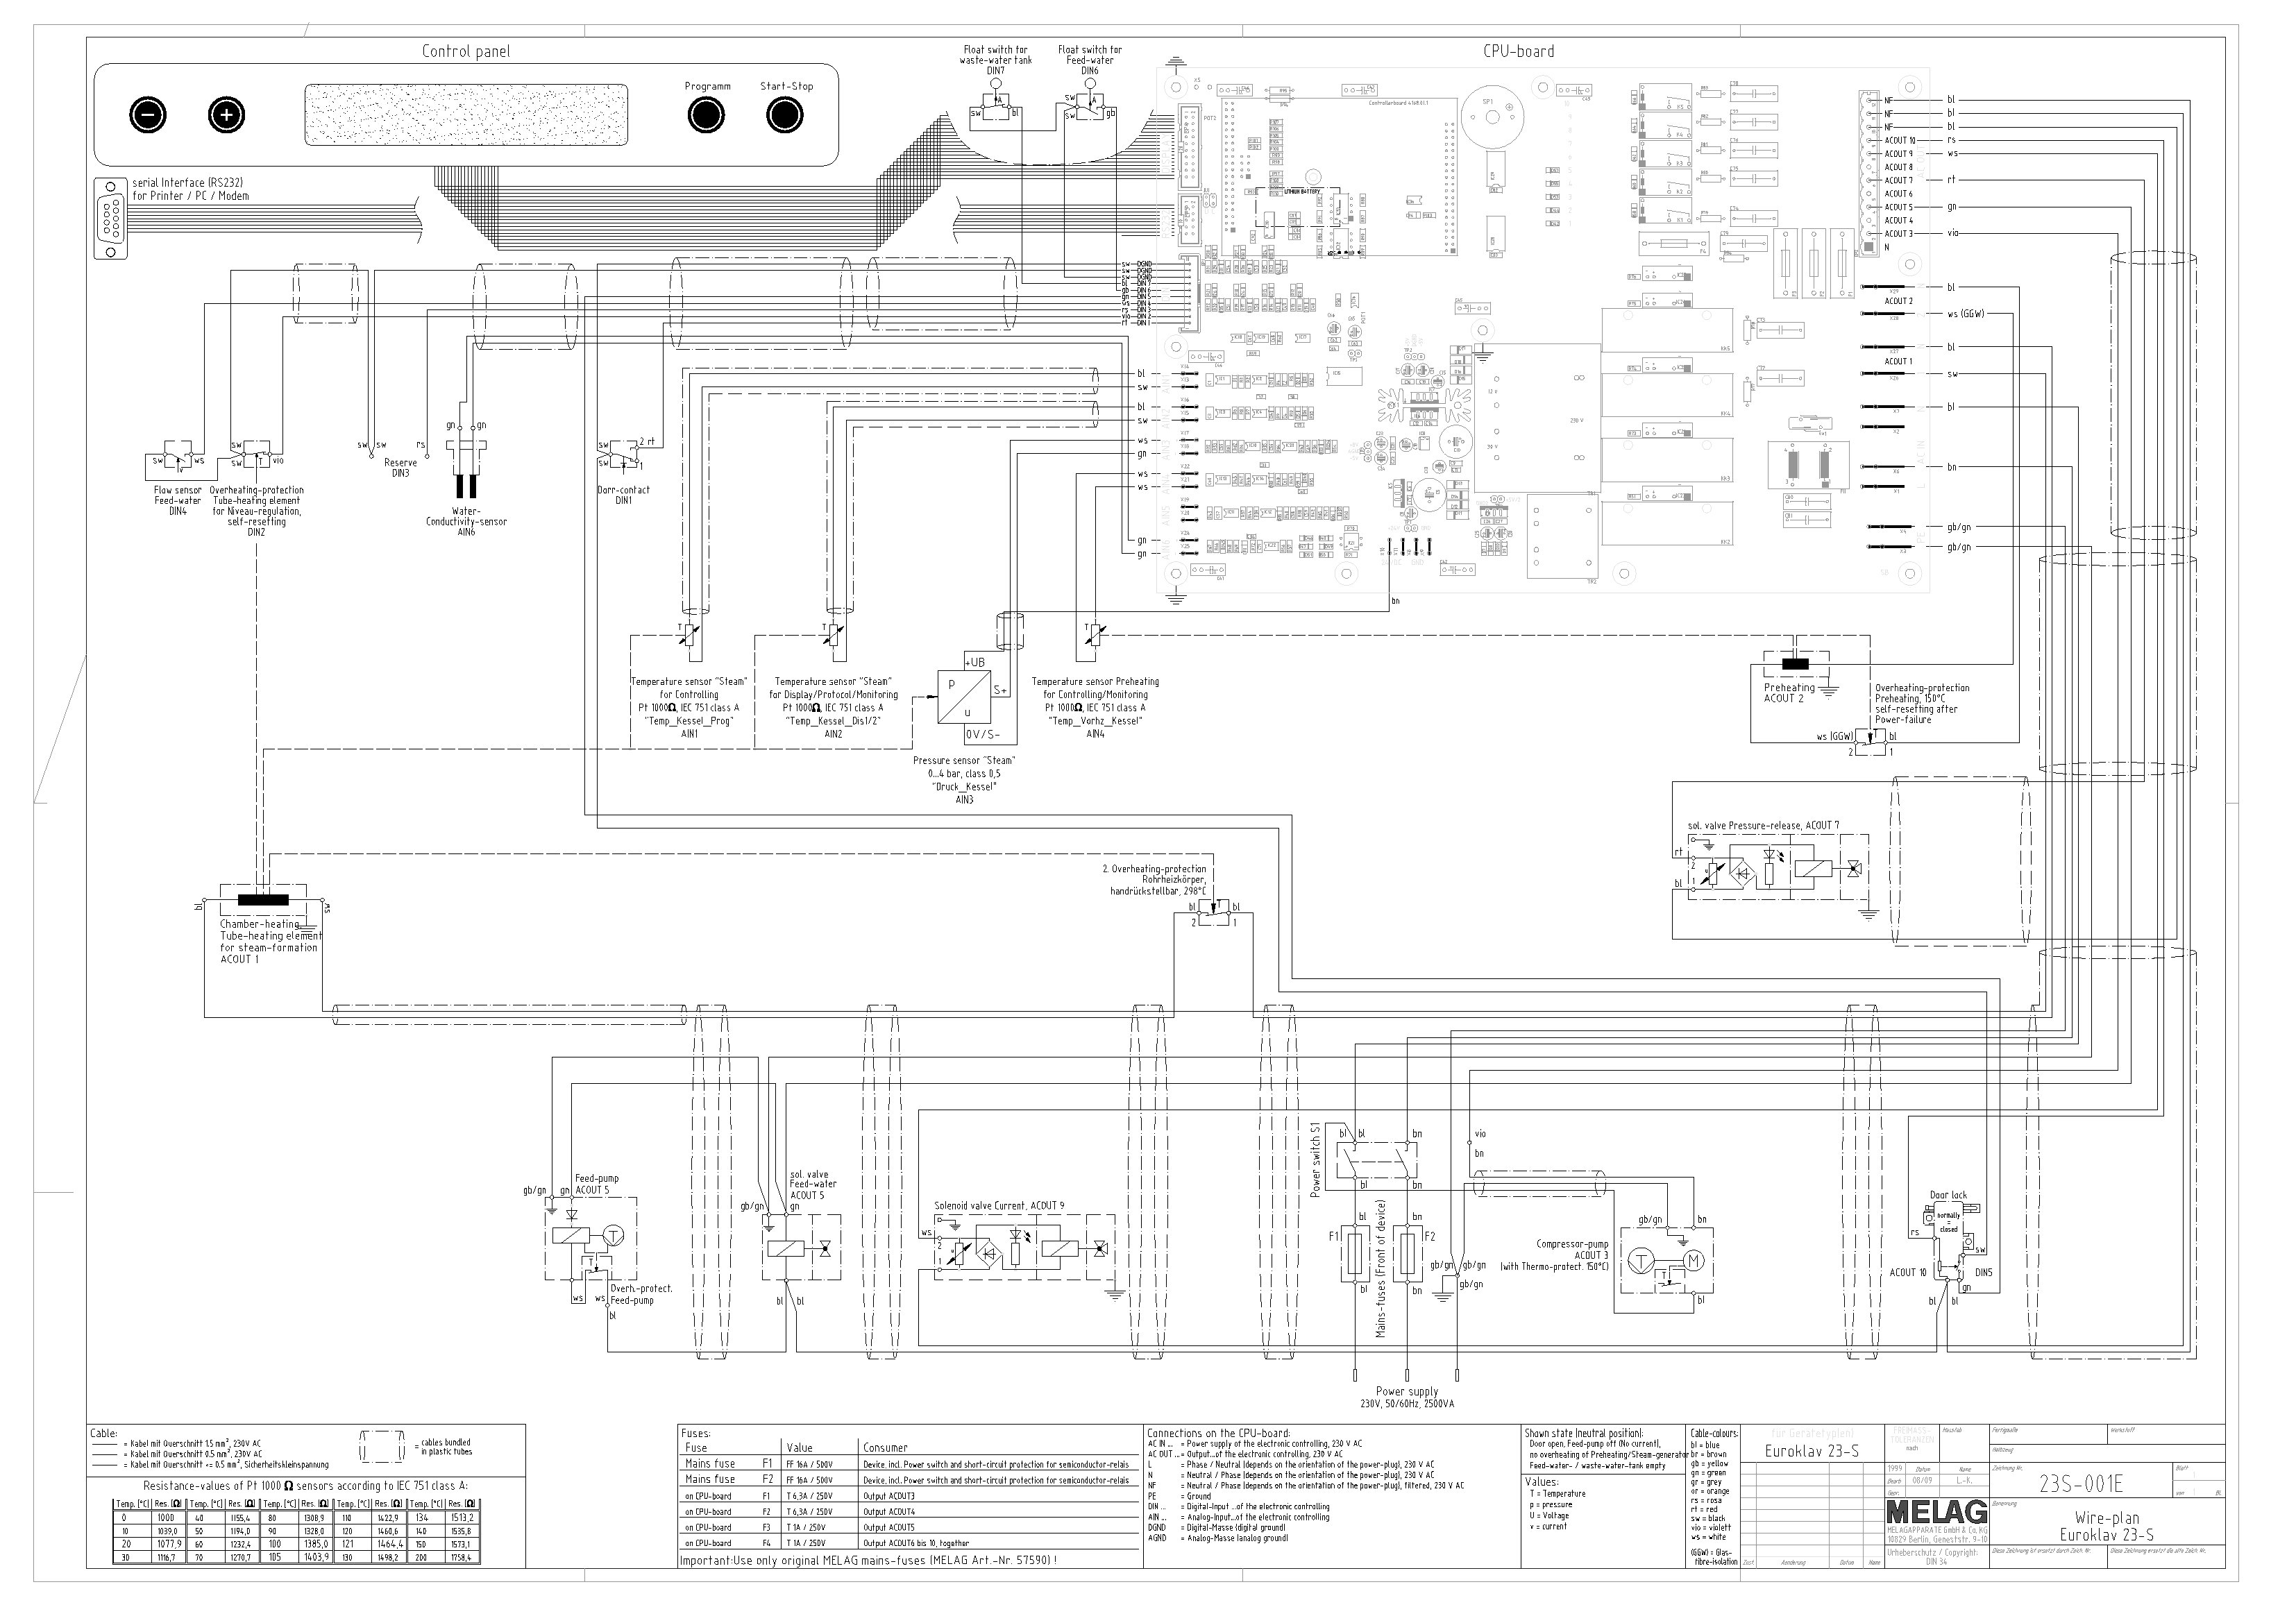 international combined 2377 wire diagrams 12 15 stromoeko de \u2022international combined 2377 wire diagrams wiring library rh 45 freac de 2377 case ih combines case ih combine